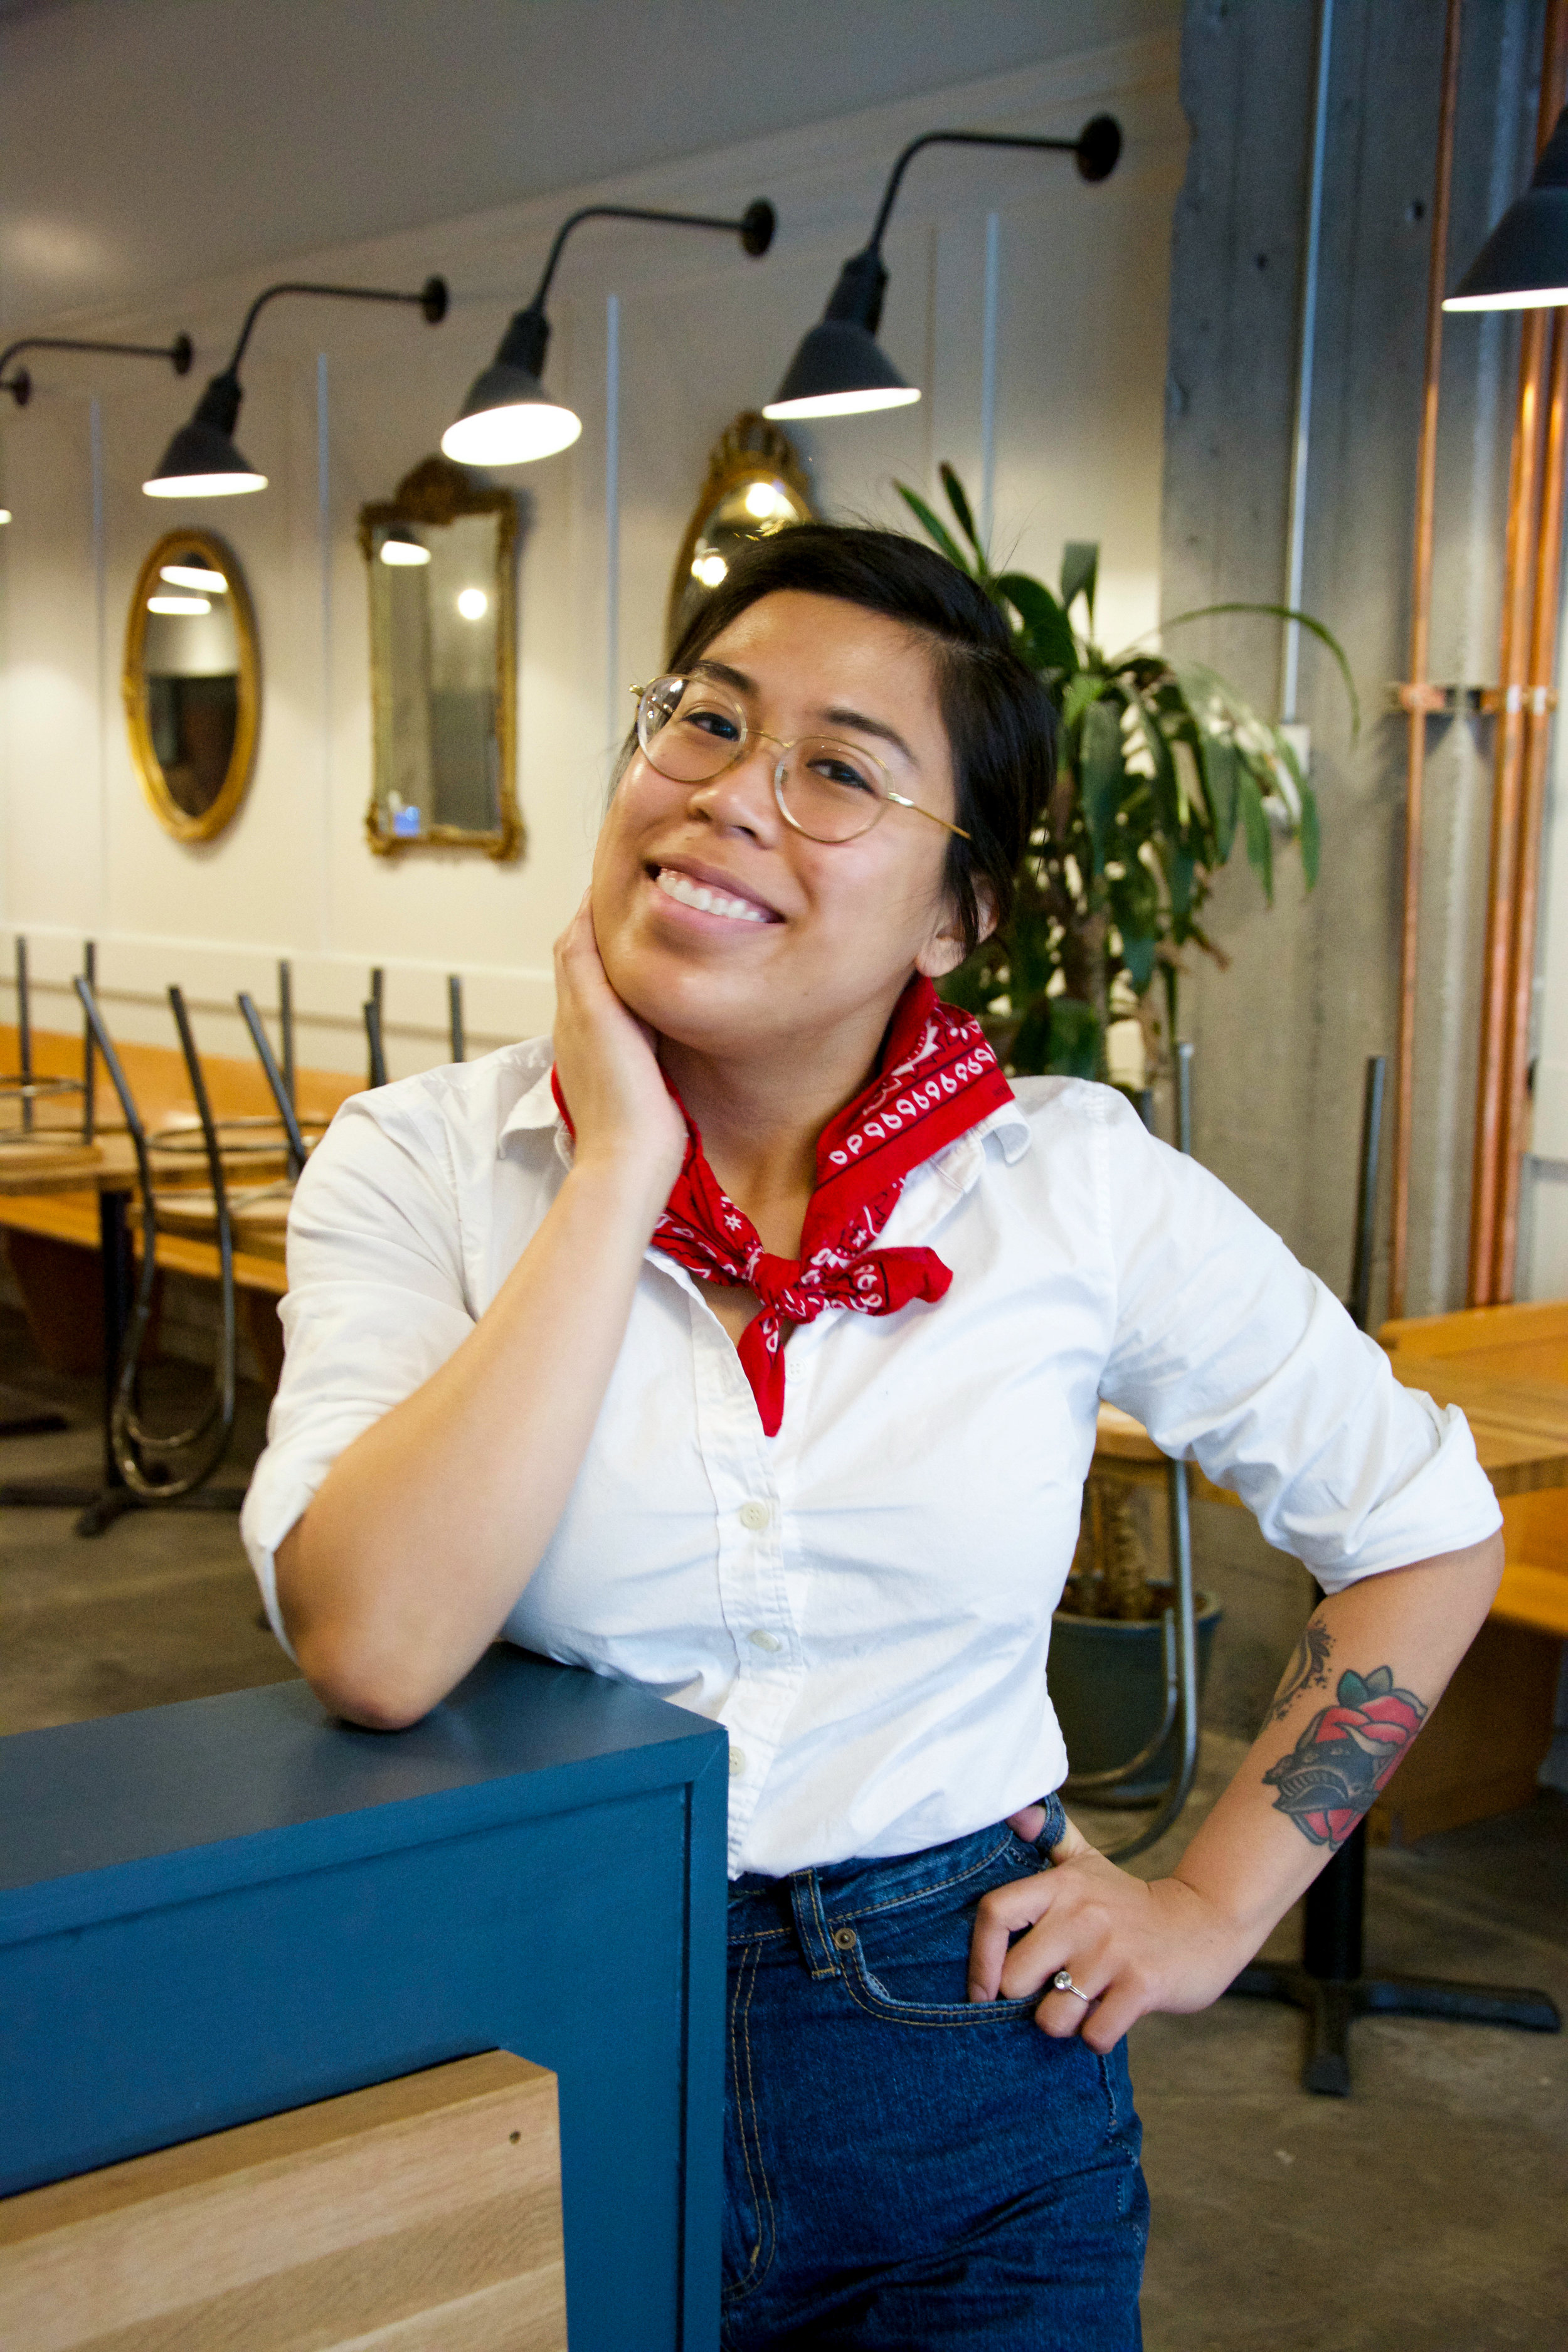 Erica Catubig/Sommelier - Catubig is the reigning 2018 Seattle Somm Smackdown Champion.The SeaHawks were once trailing 14-0 and Erica punted them back to victory. That victory stance isn't just for show.She is studying for her advanced Sommelier certification.